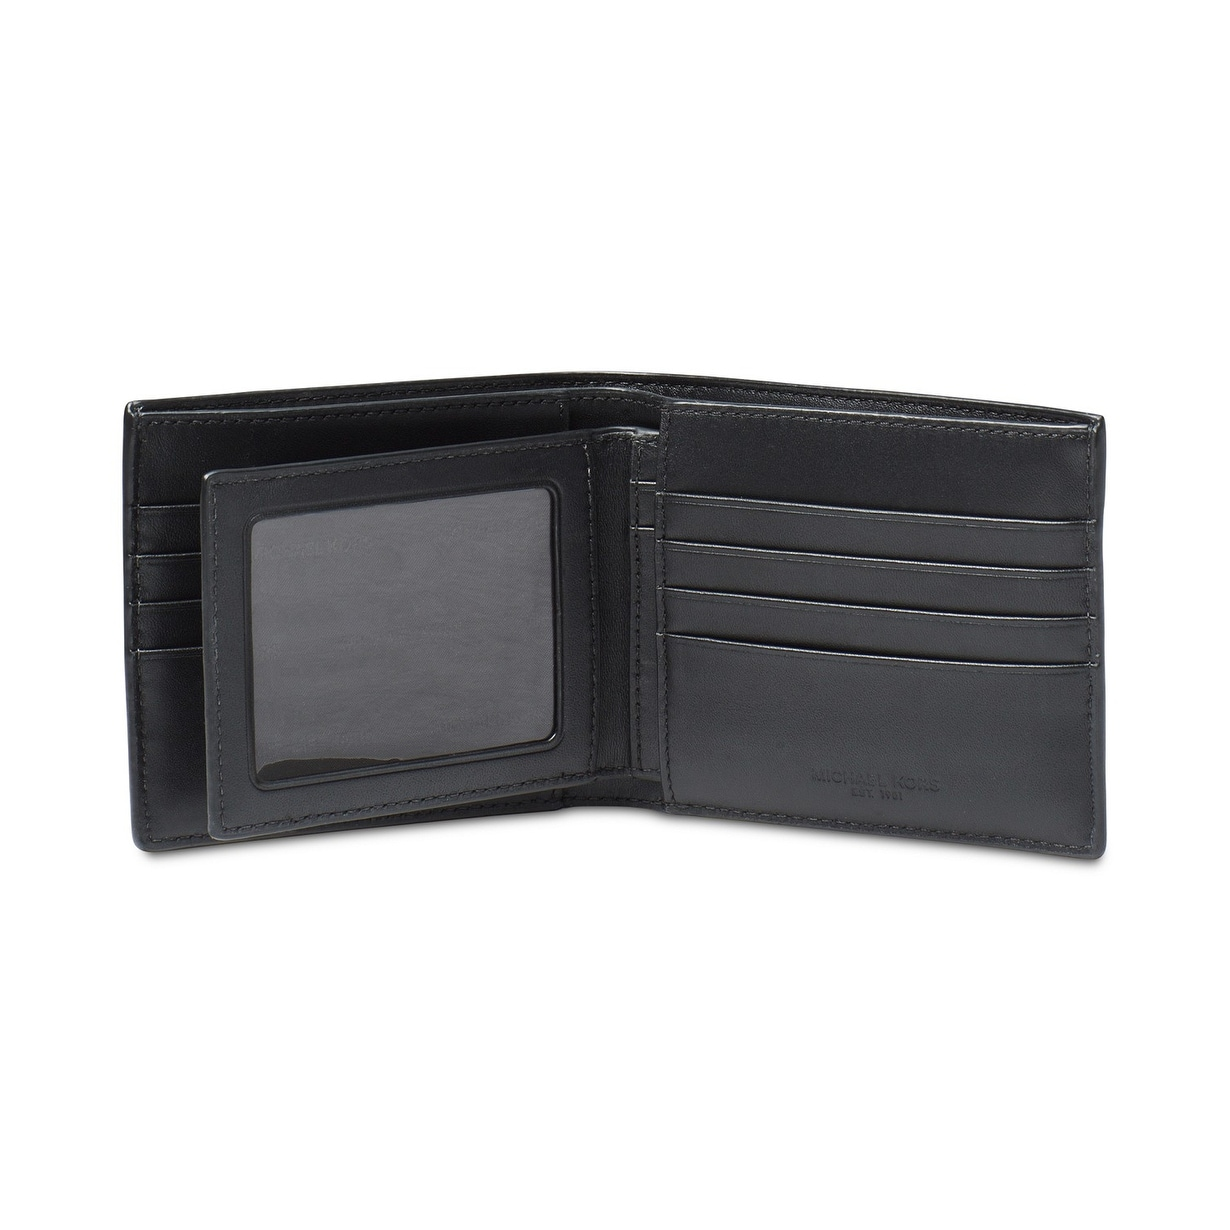 0fbef50f6e2a98 Shop MICHAEL Michael Kors Men's Jet Set Bifold Wallet - On Sale - Free  Shipping Today - Overstock - 25776117